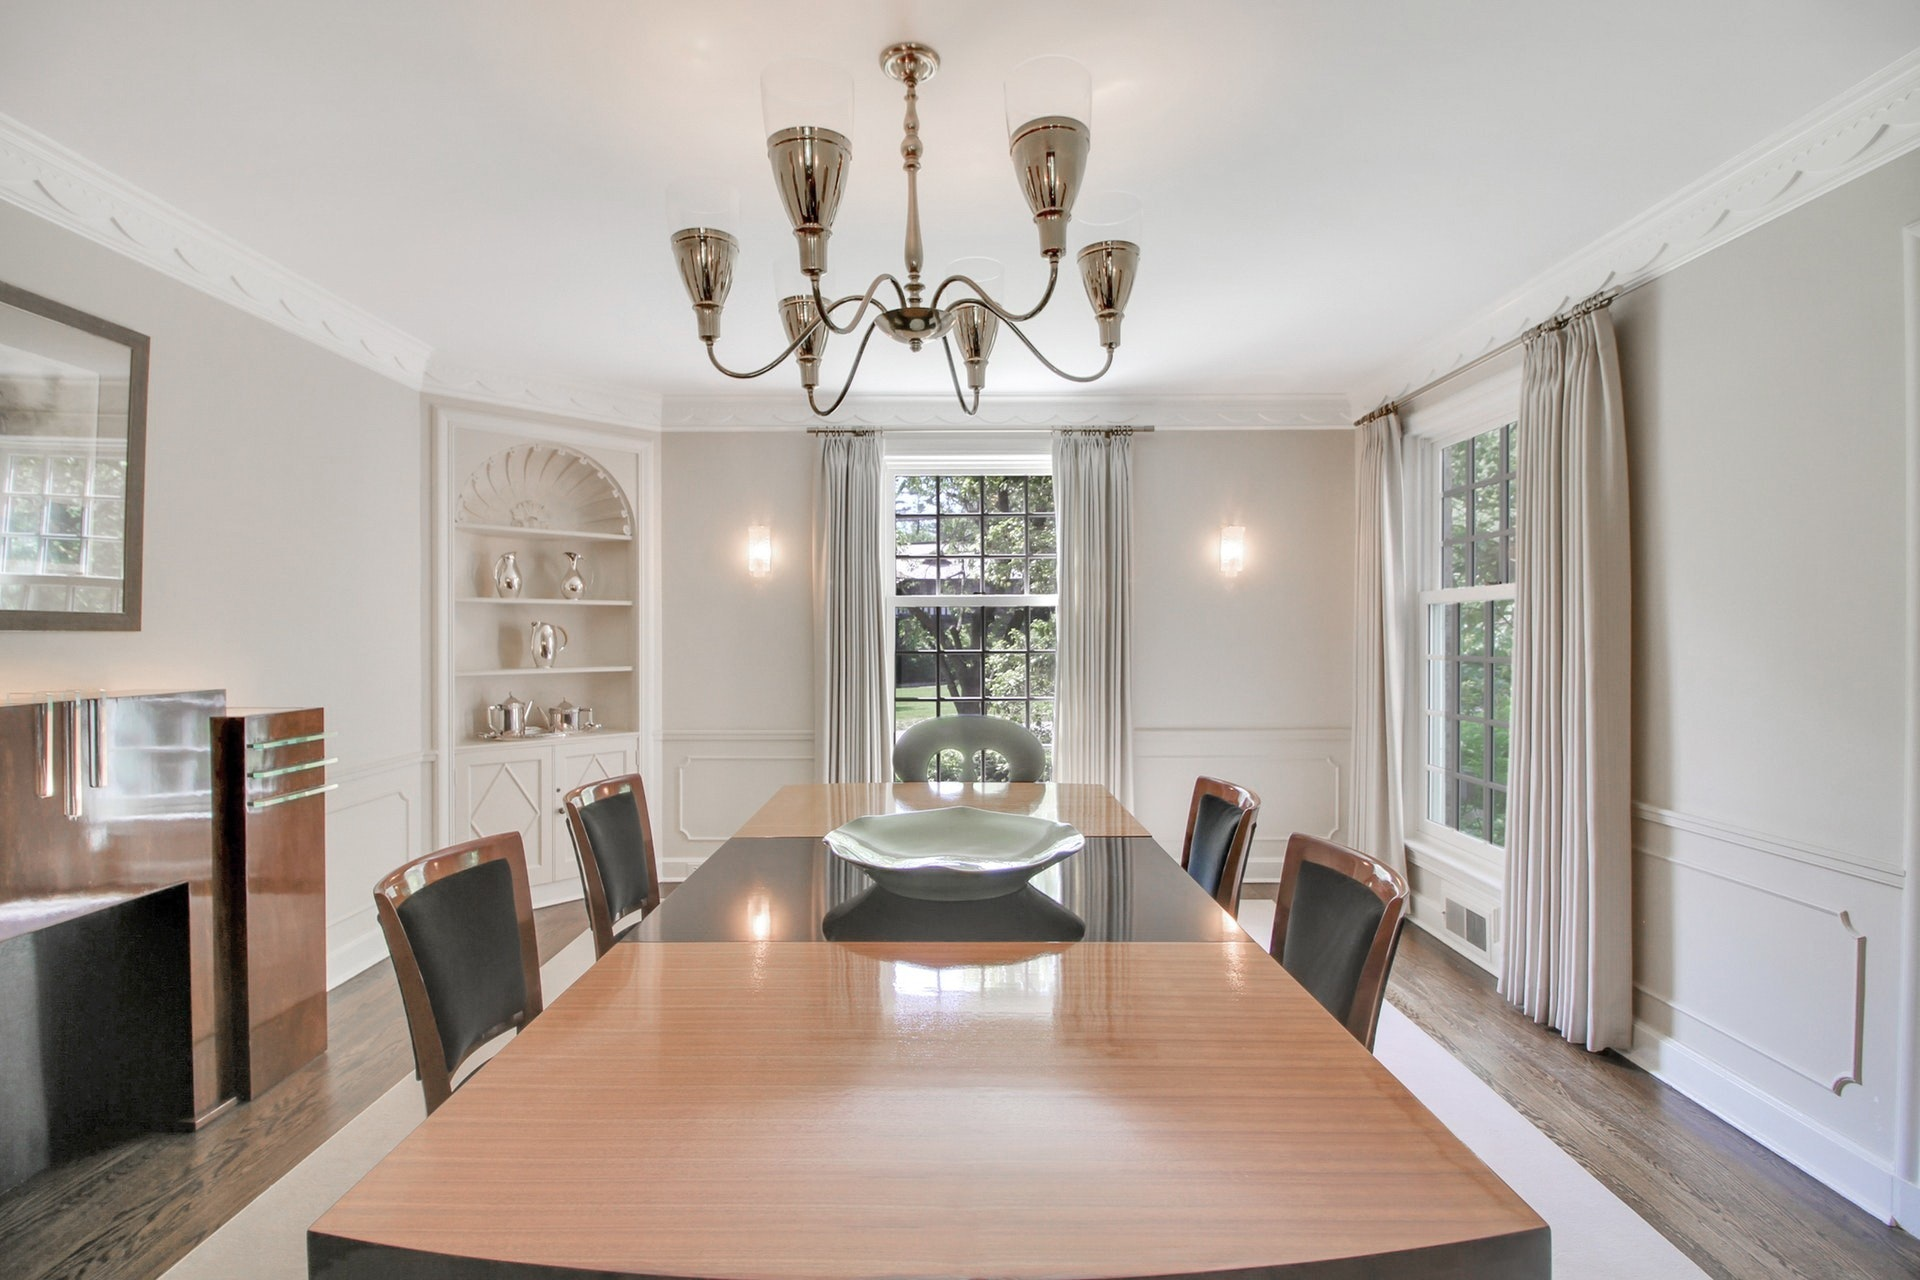 74 Taylor Road Dining Room